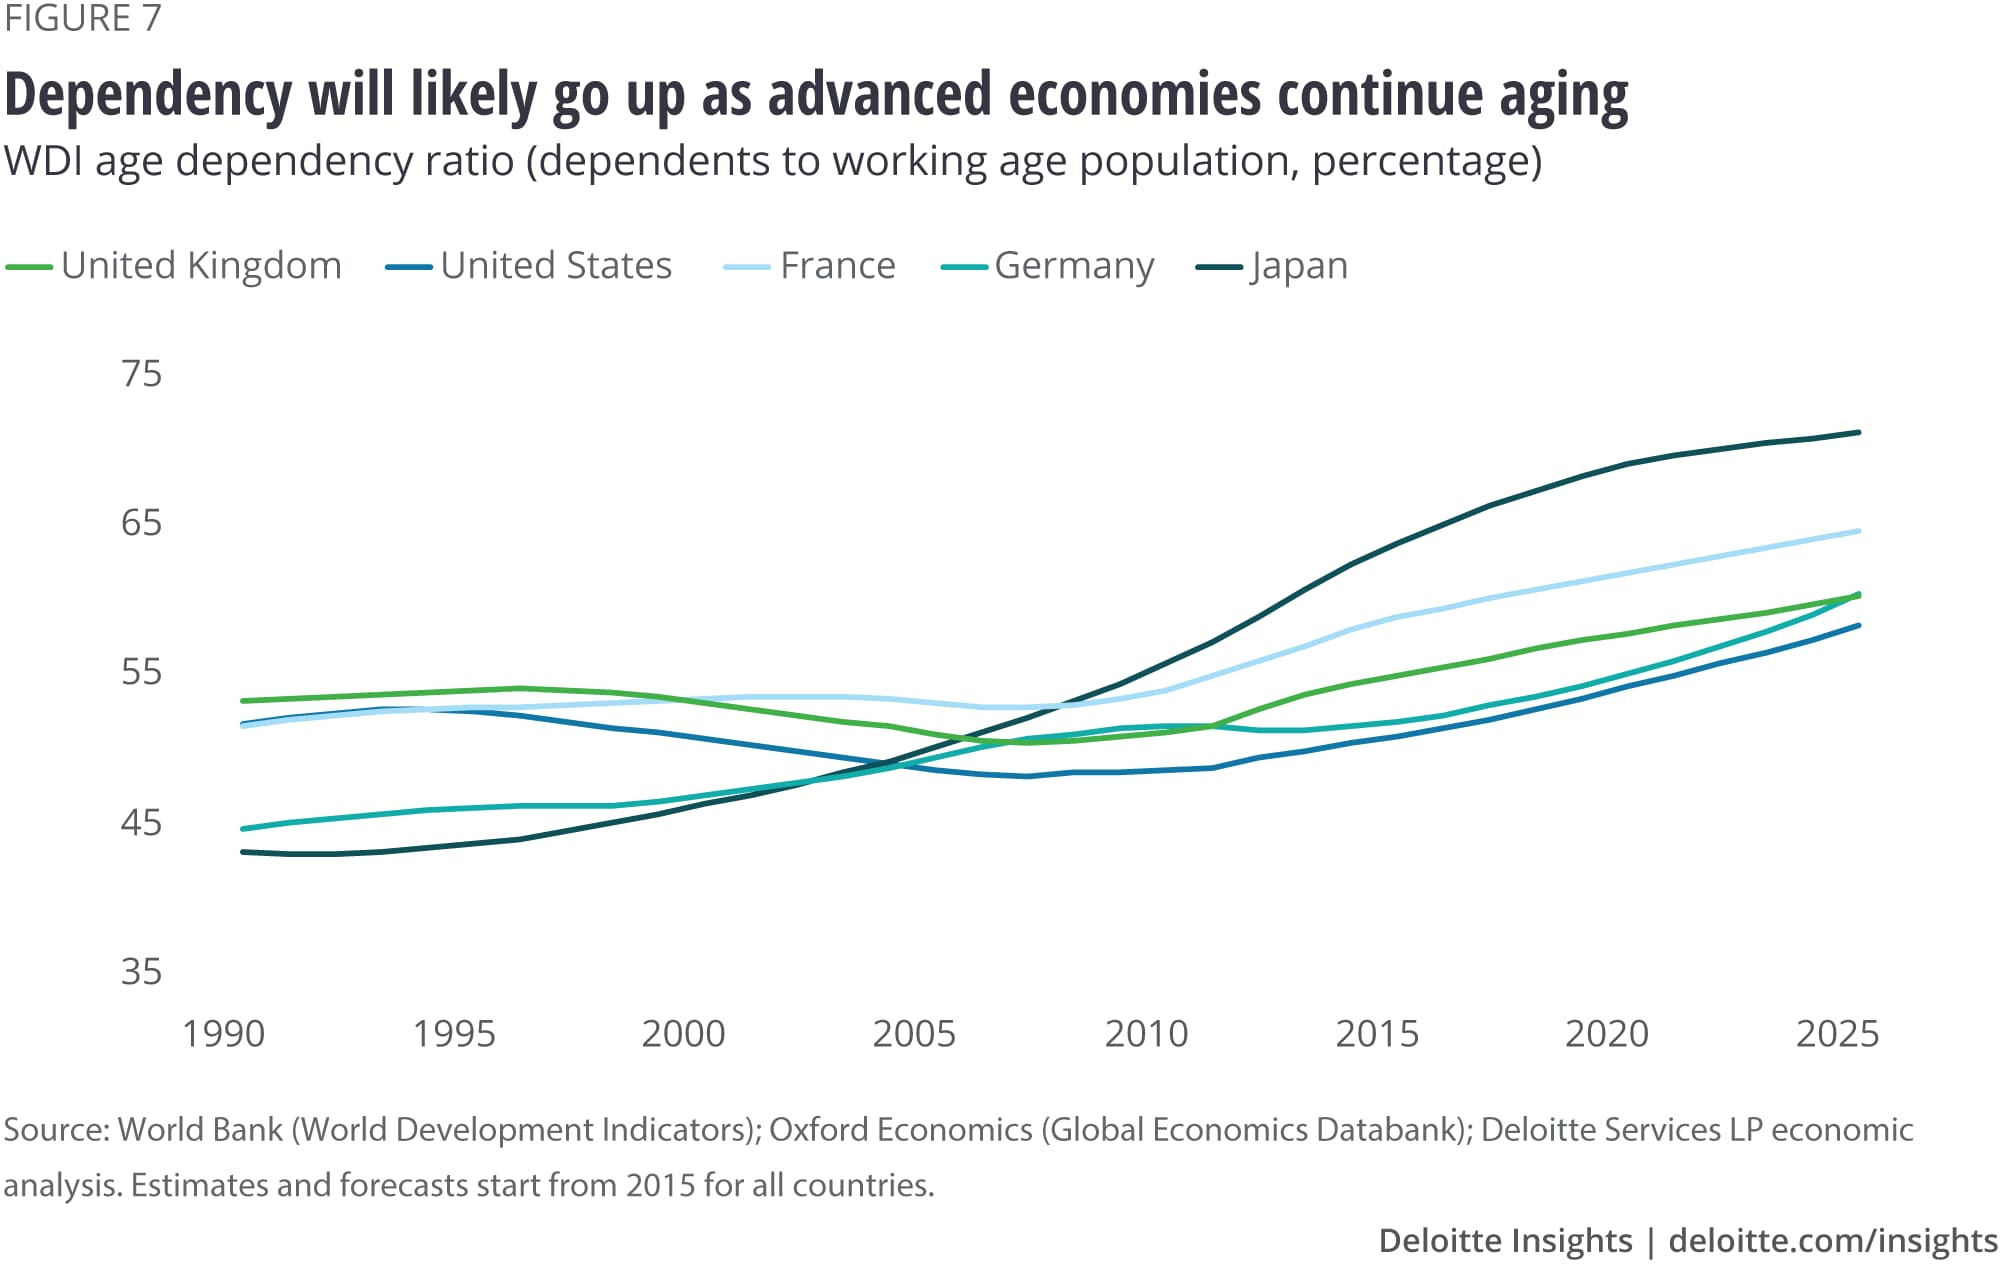 Dependency will likely go up as advanced economies continue aging